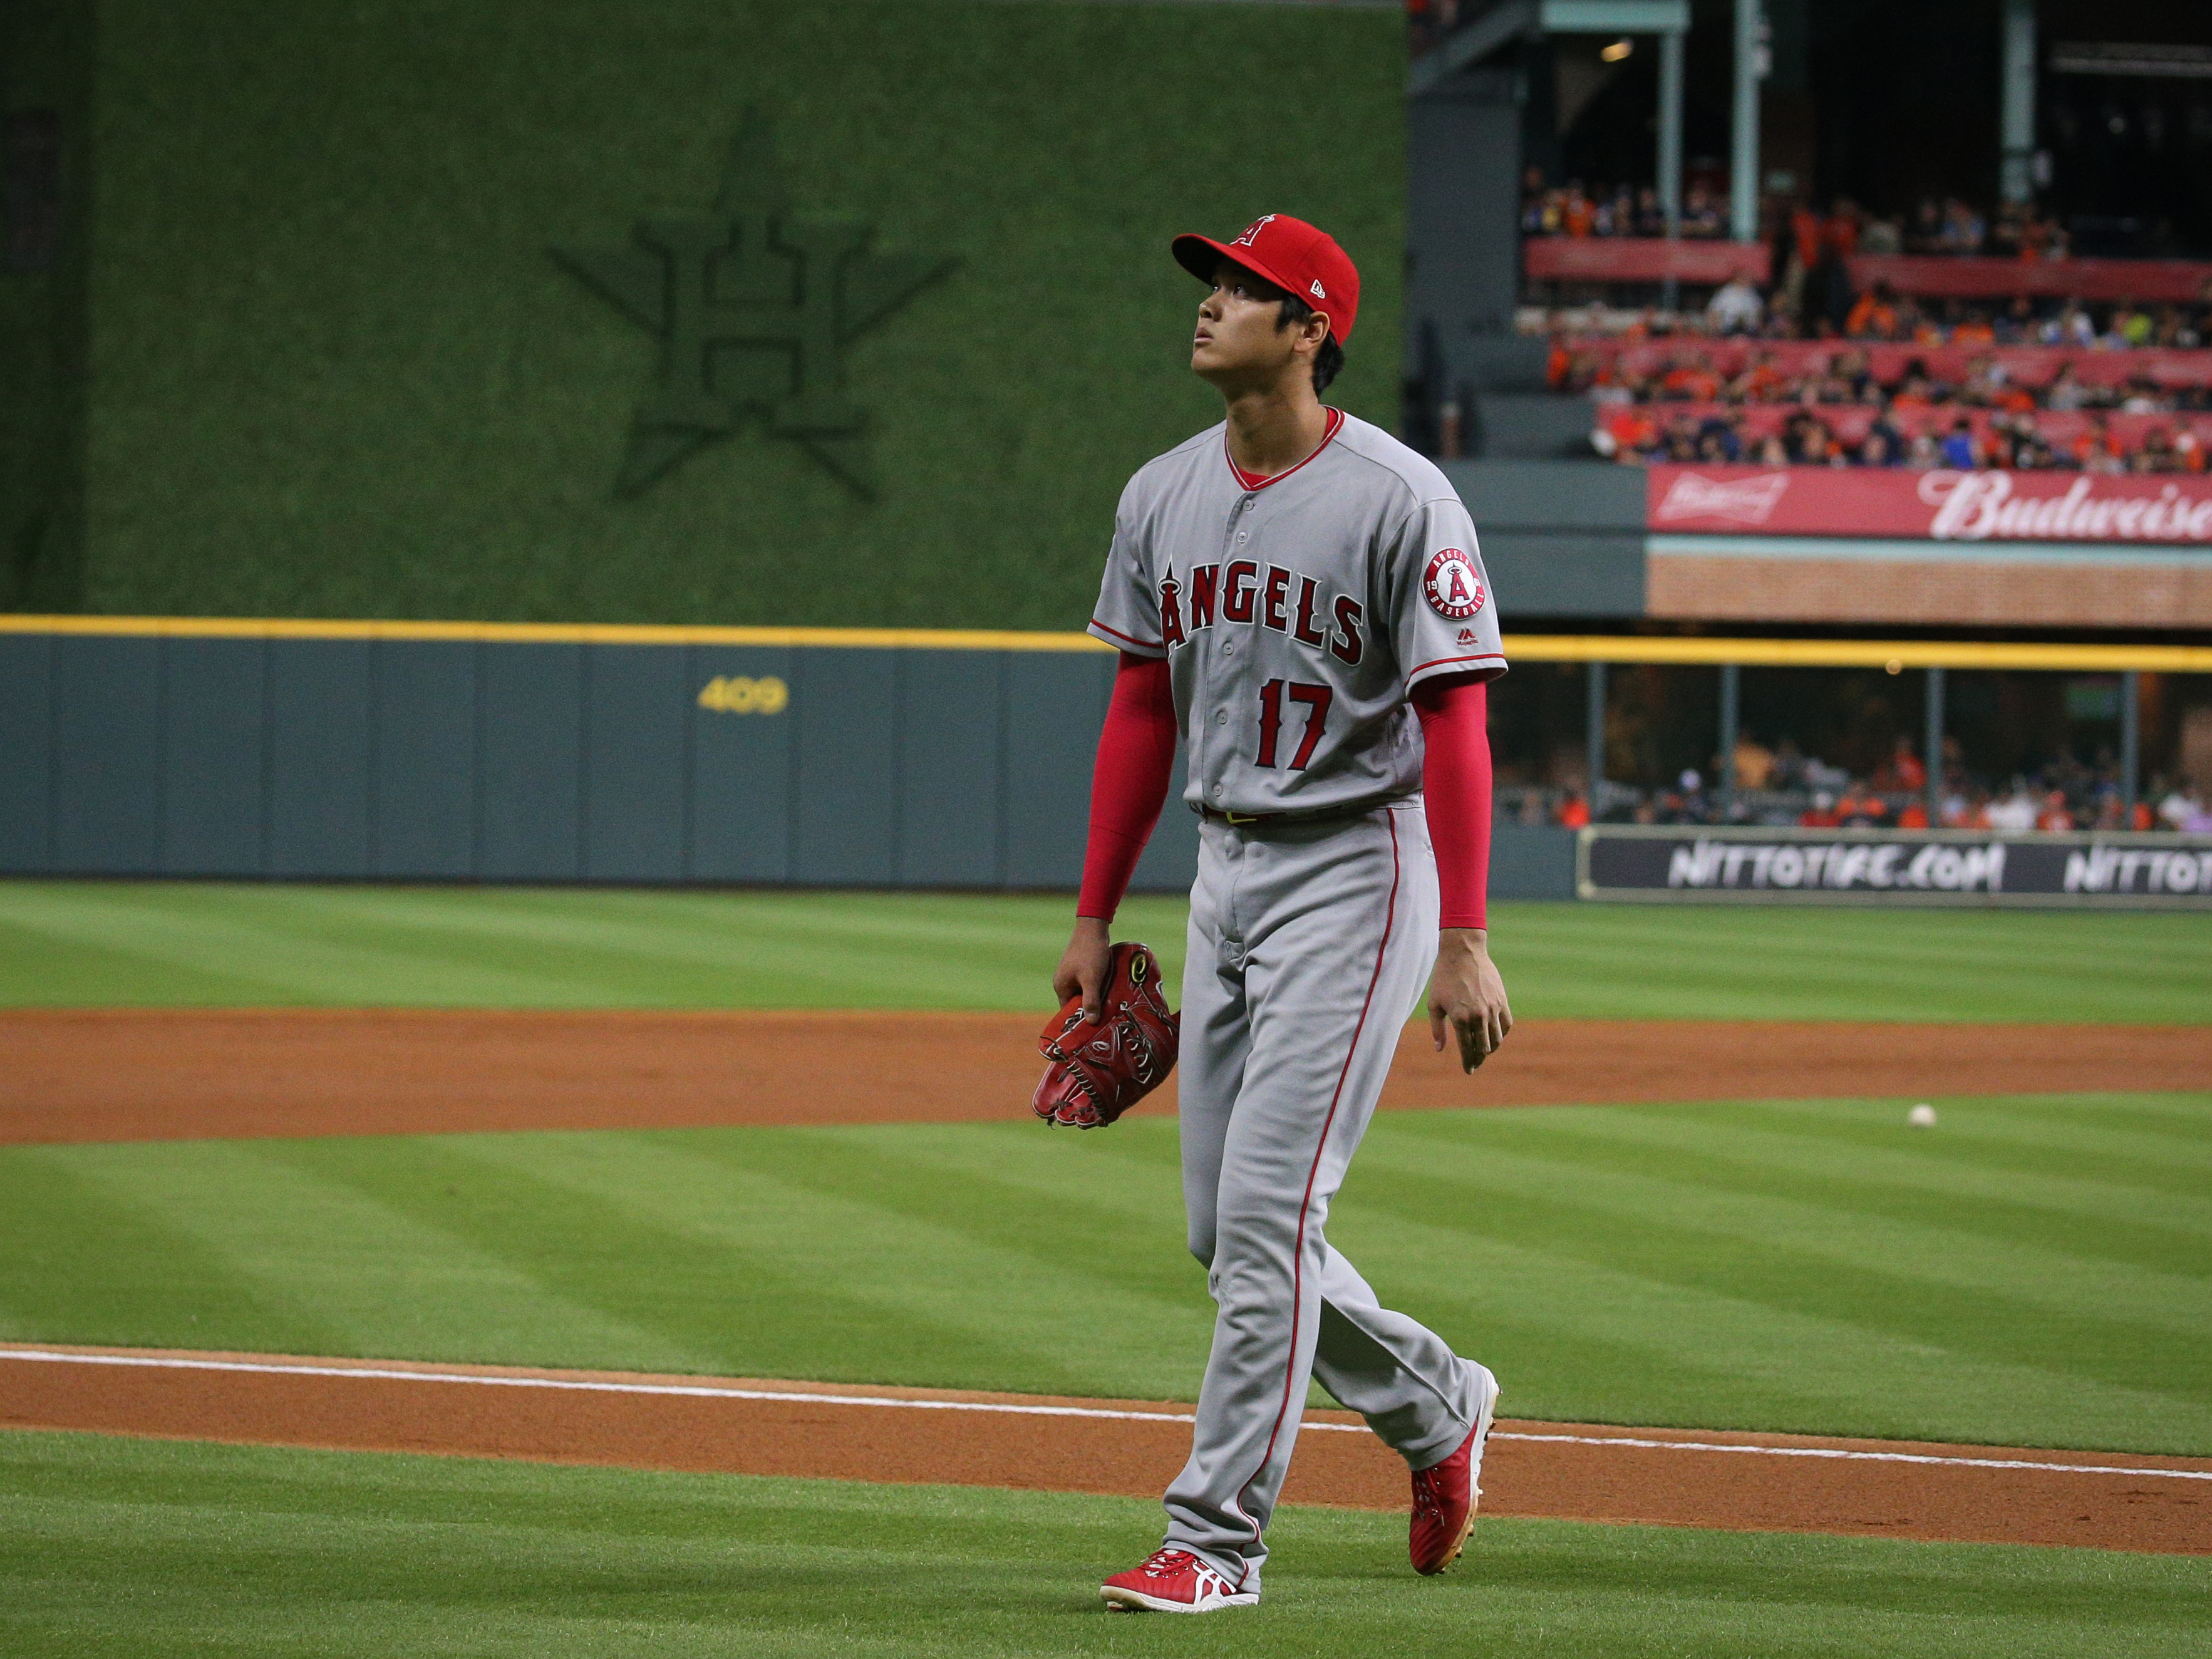 Los Angeles Angels v. Houston Astros